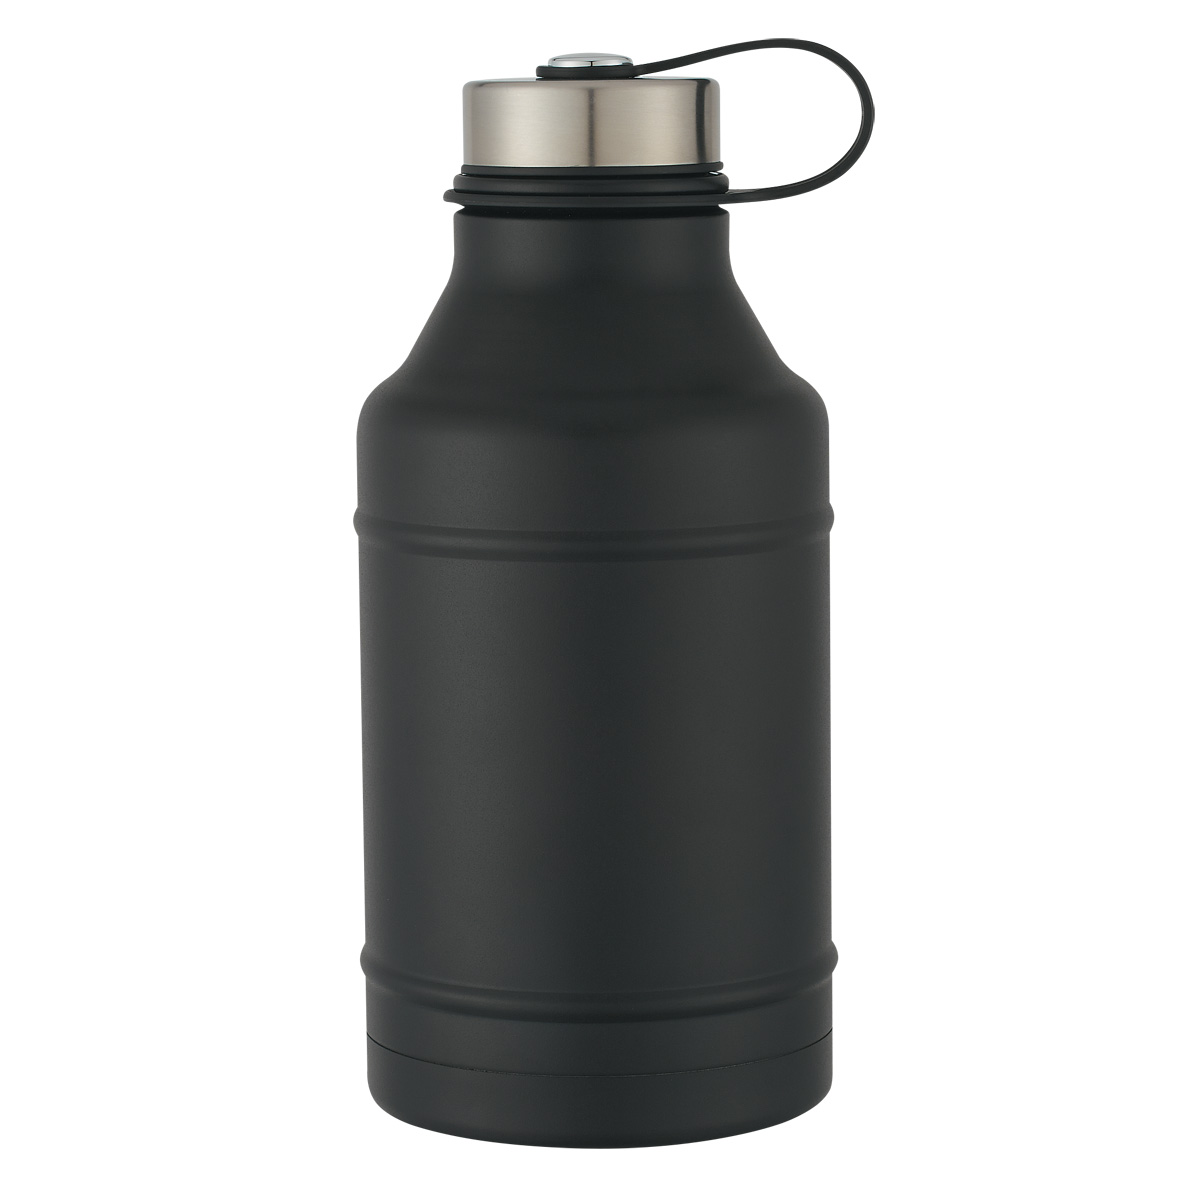 #CM 5729 - 64 Oz. Stainless Steel Wide-Mouth Growler